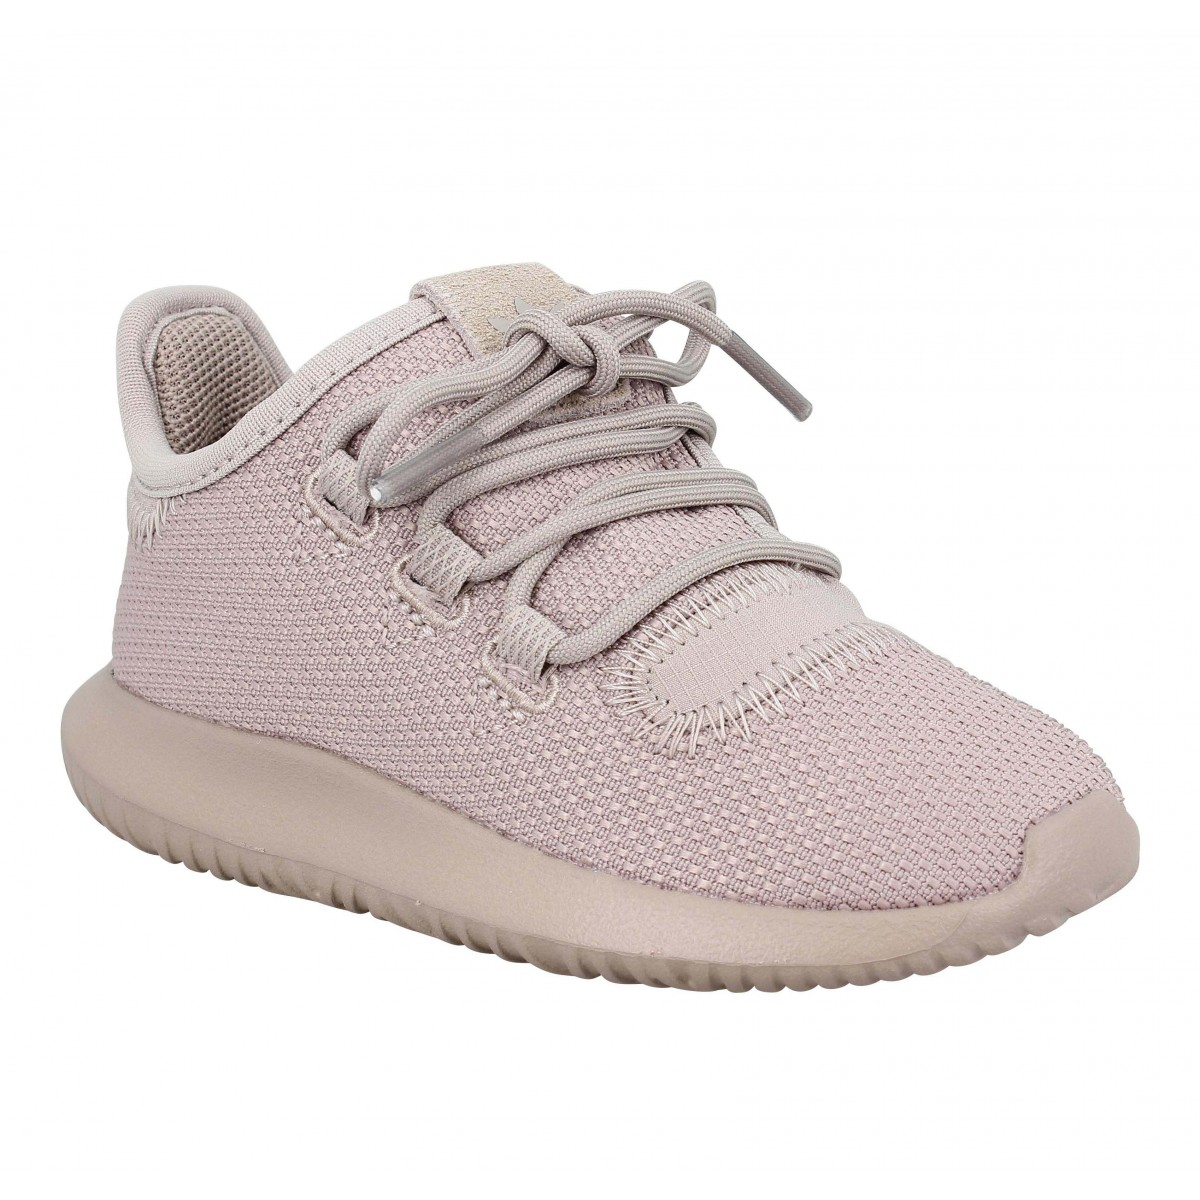 Baskets ADIDAS Tubular Shadow toile Enfant Grey Rose